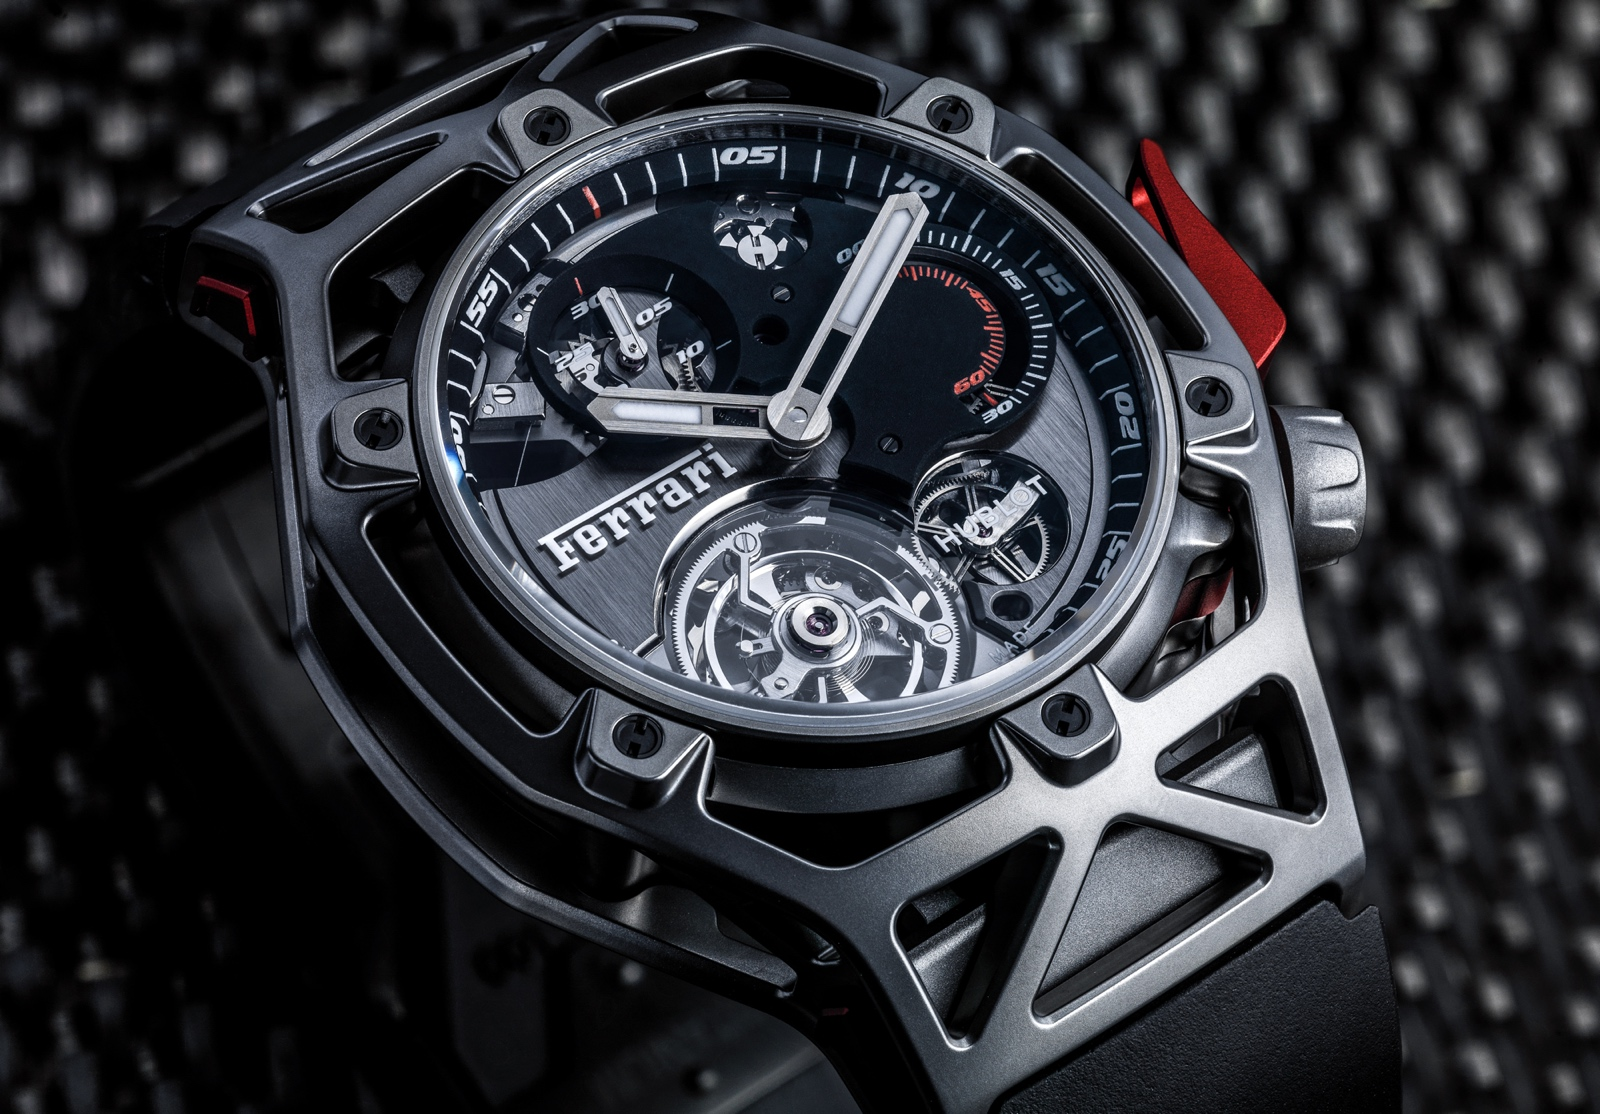 Hublot en Baselworld 2017 - Techframe Ferrari 70 years Tourbillon Chronograph - titanium